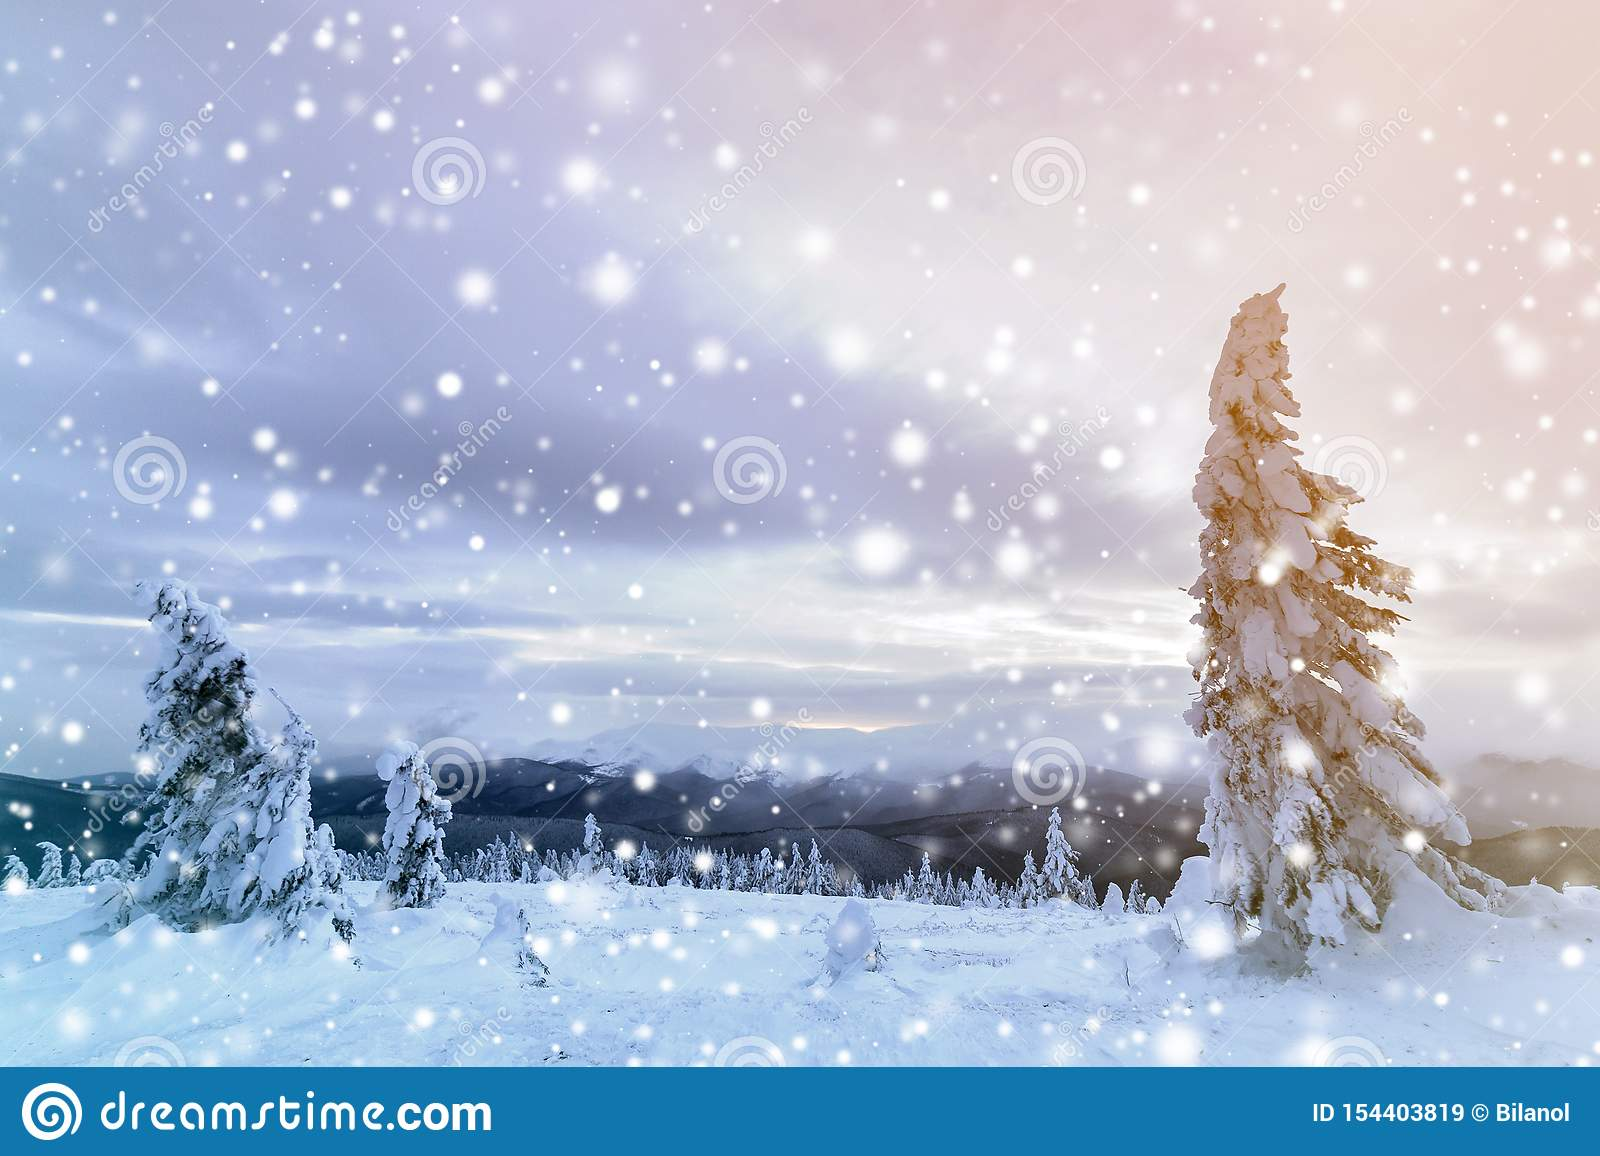 Winter mountain blue landscape. Small spruce trees in deep snow on bright cloudy sky copy space background